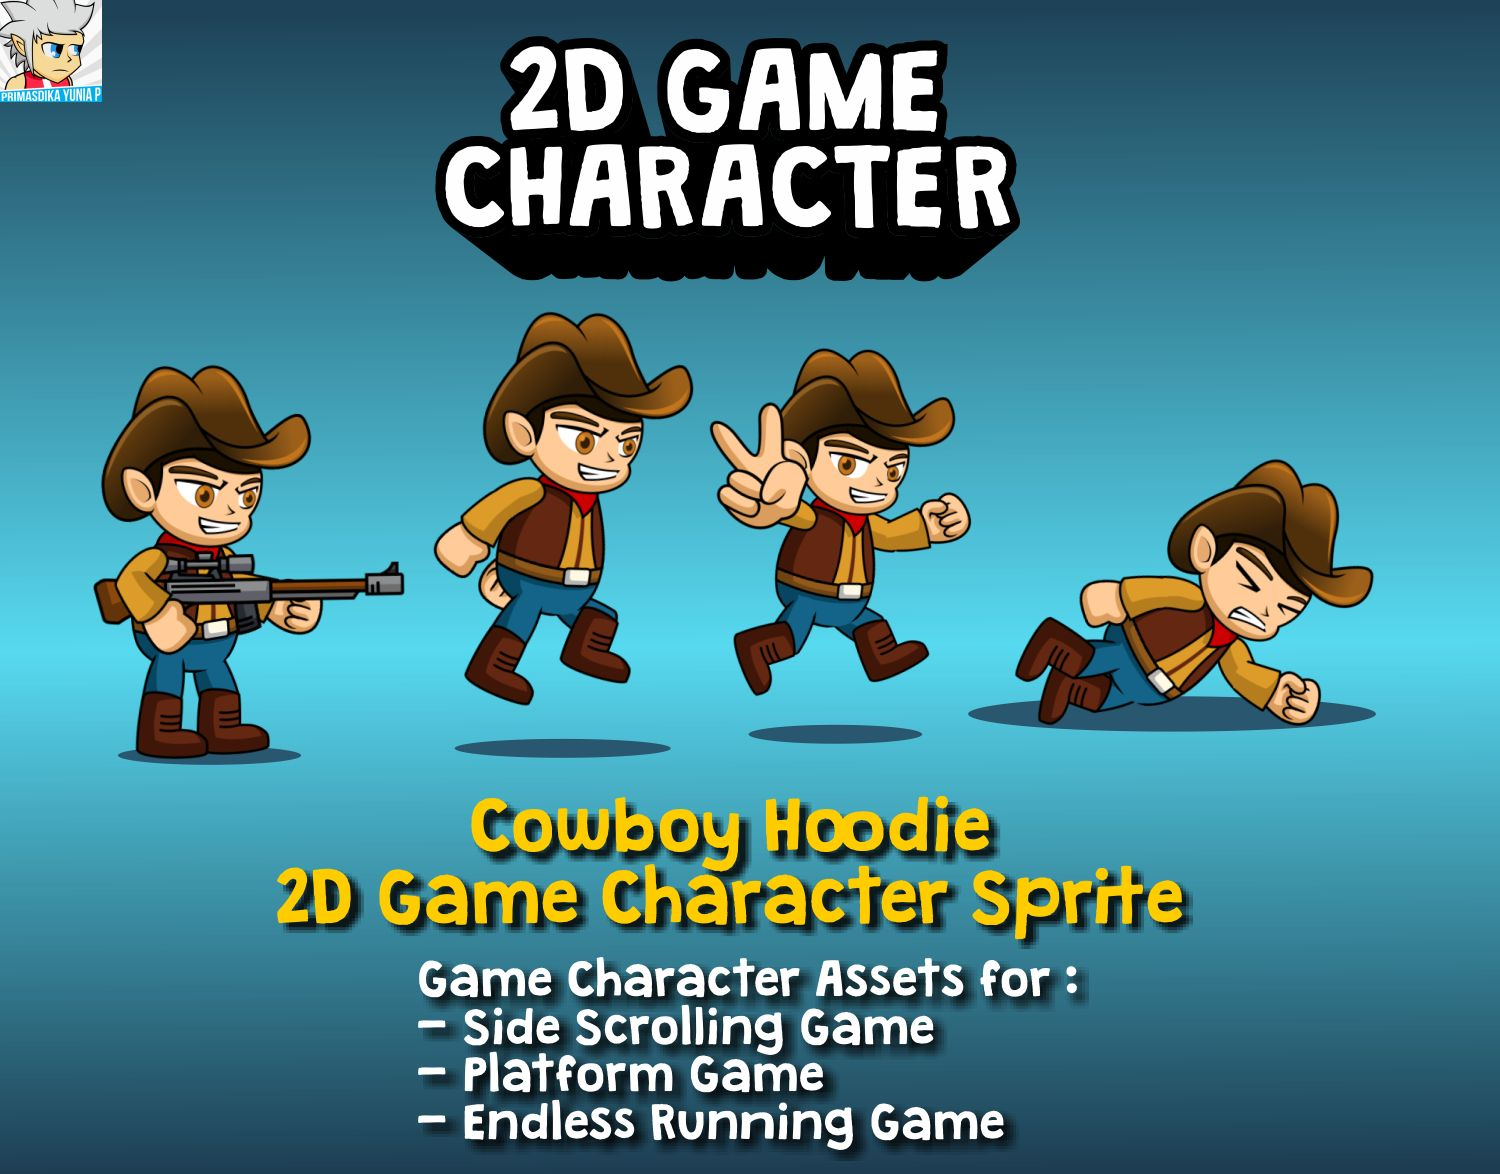 Cowboy Hoodie 2D Game Character Sprite Screenshot 1